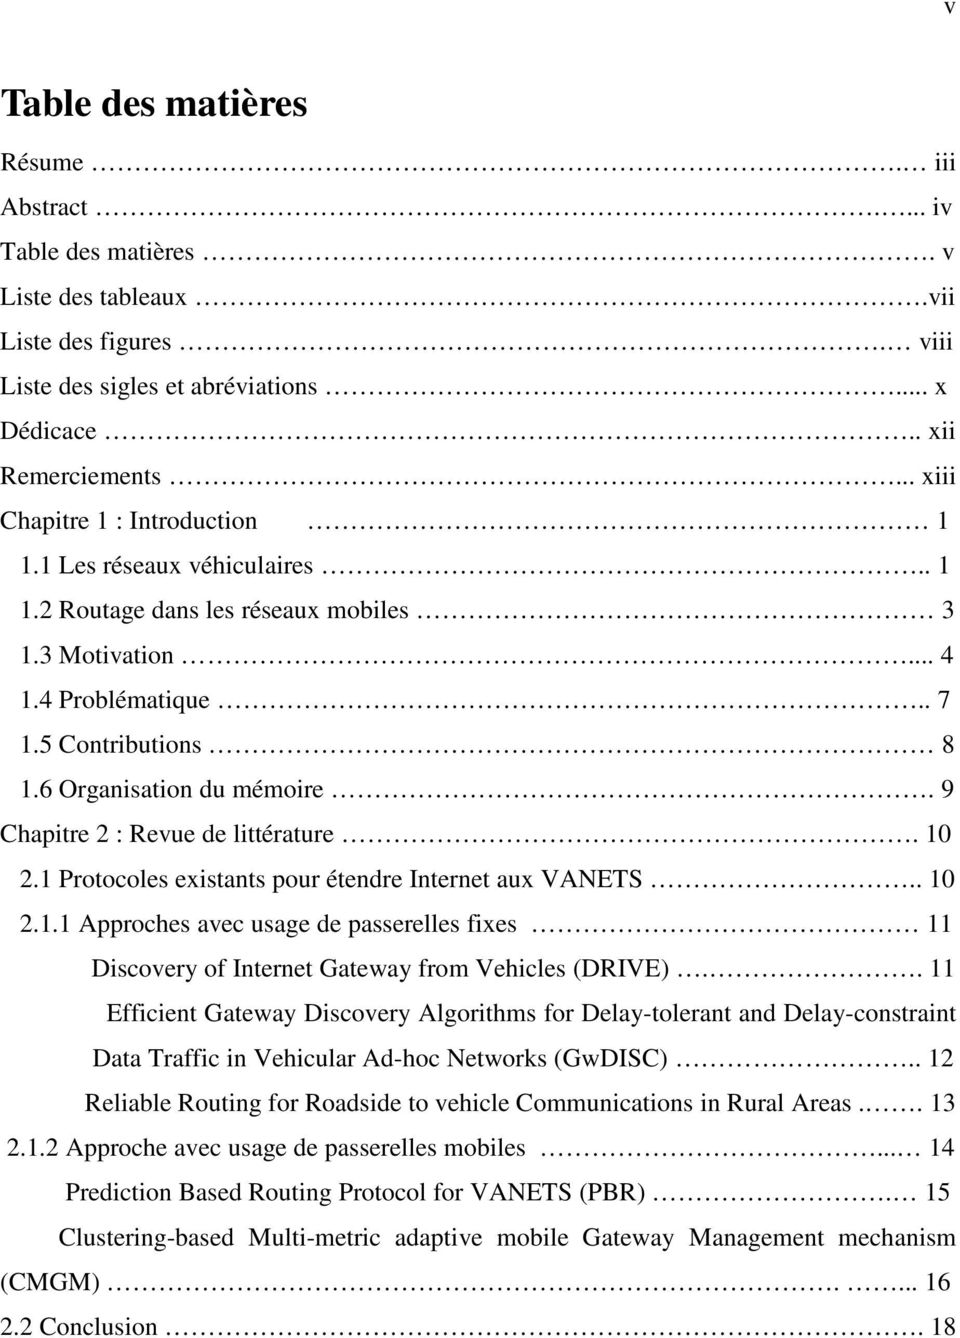 9 Chapitre 2 : Revue de littérature. 10 2.1 Protocoles existants pour étendre Internet aux VANETS.. 10 2.1.1 Approches avec usage de passerelles fixes 11 Discovery of Internet Gateway from Vehicles (DRIVE).